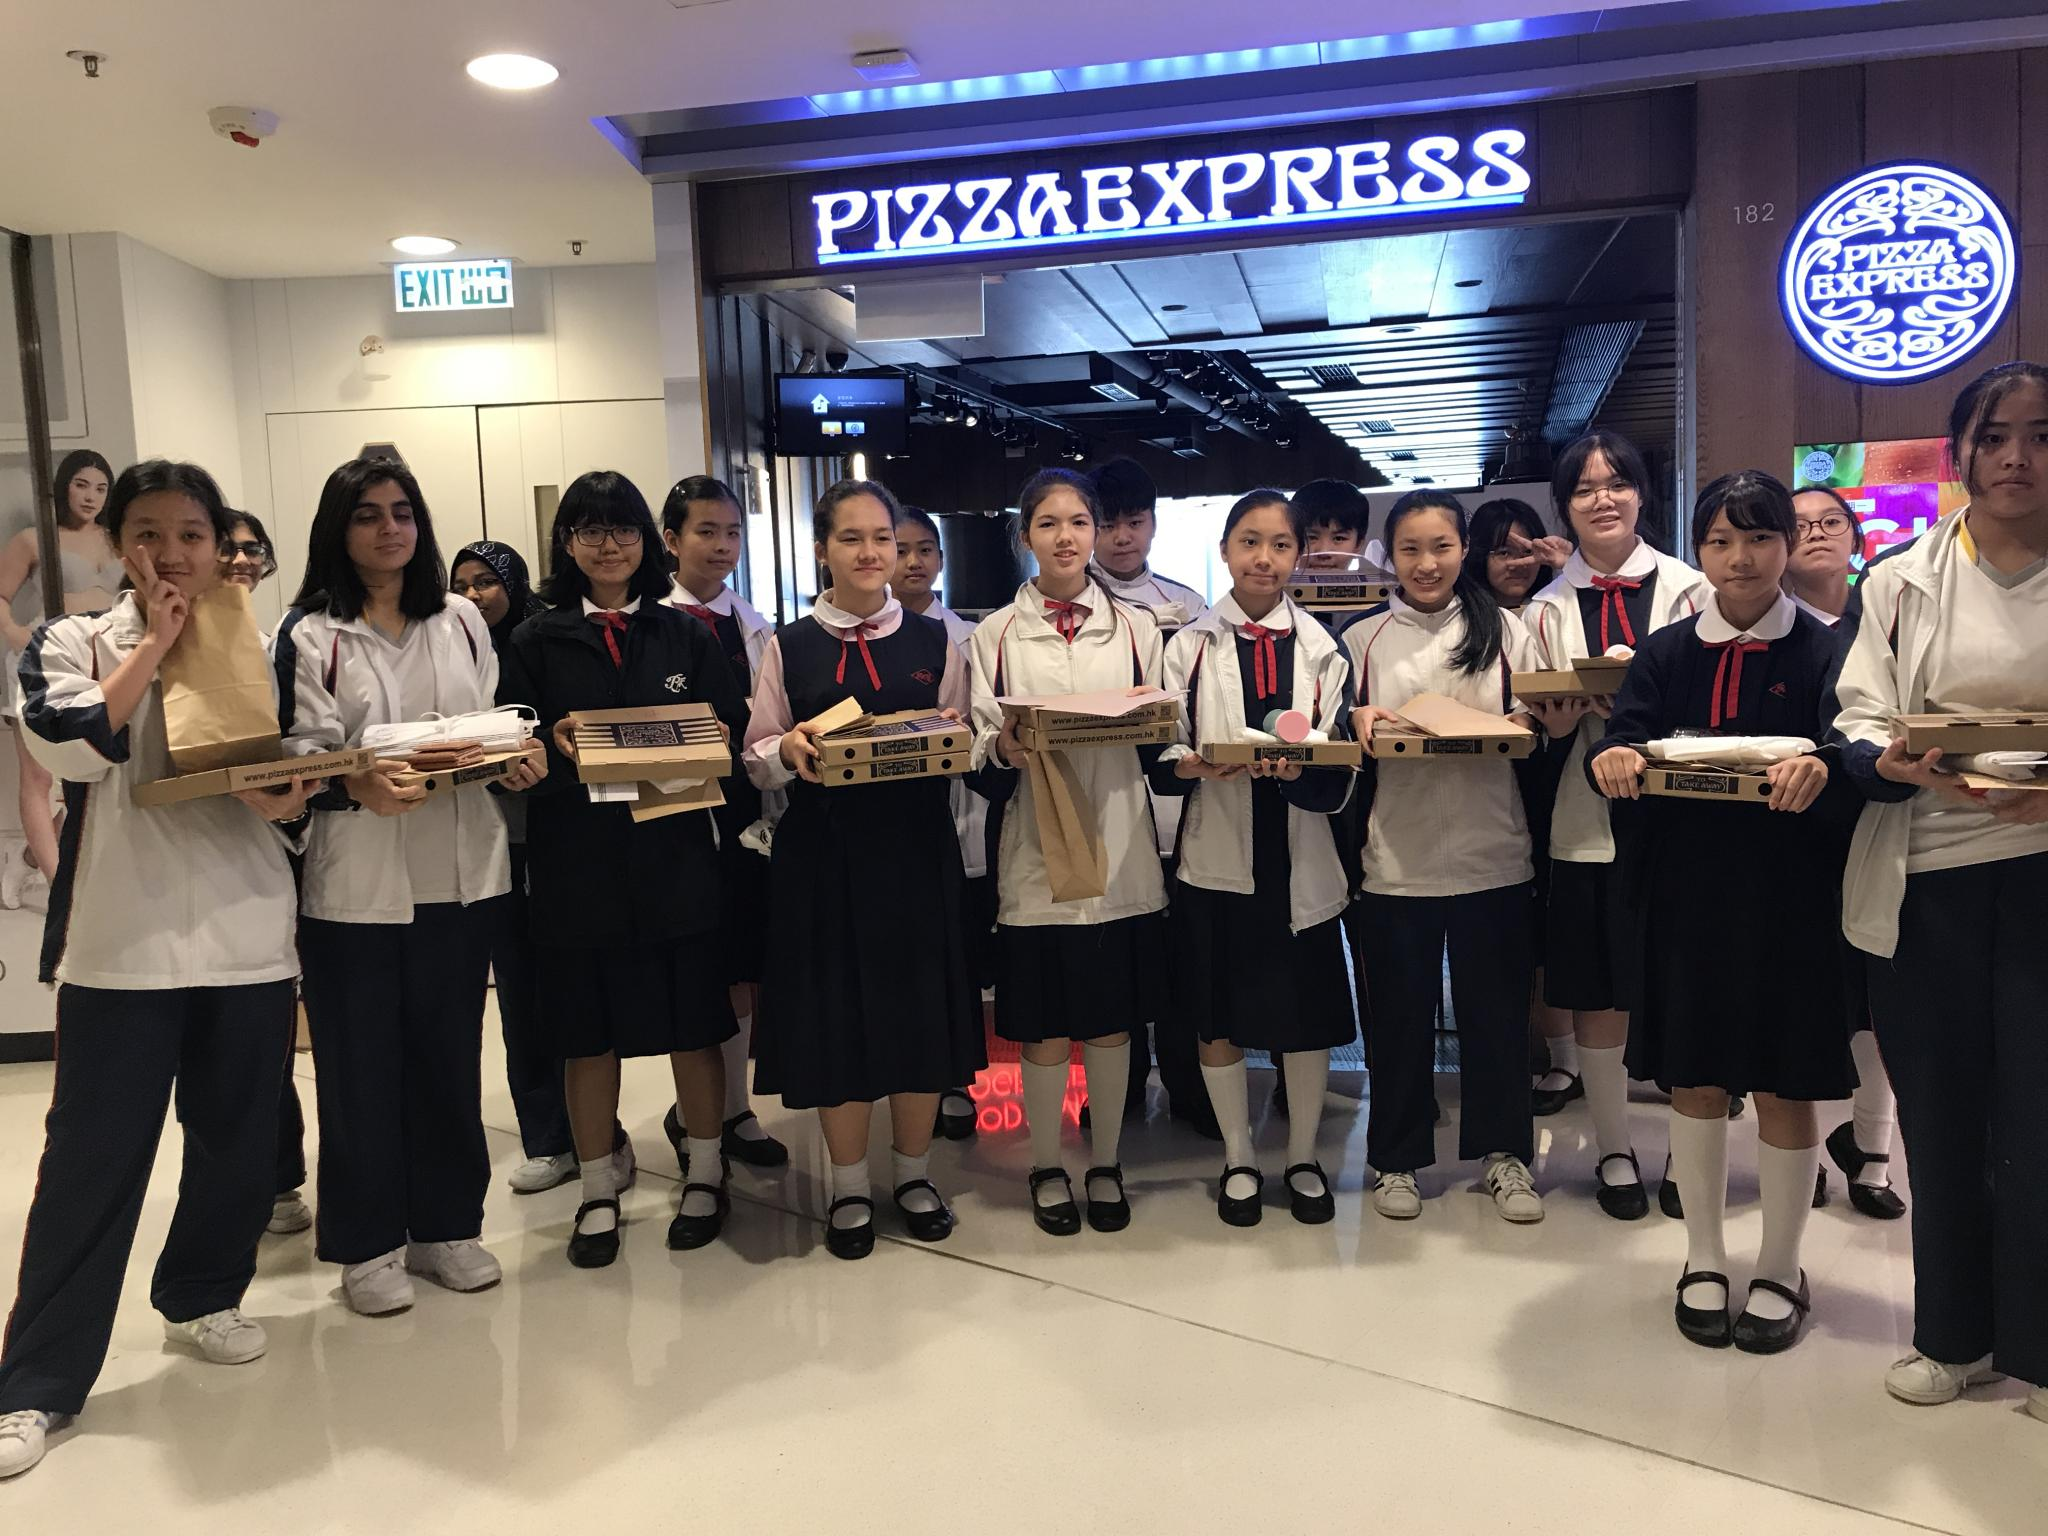 18 students from S1 to S3 visited the Pizza Express in Moko.